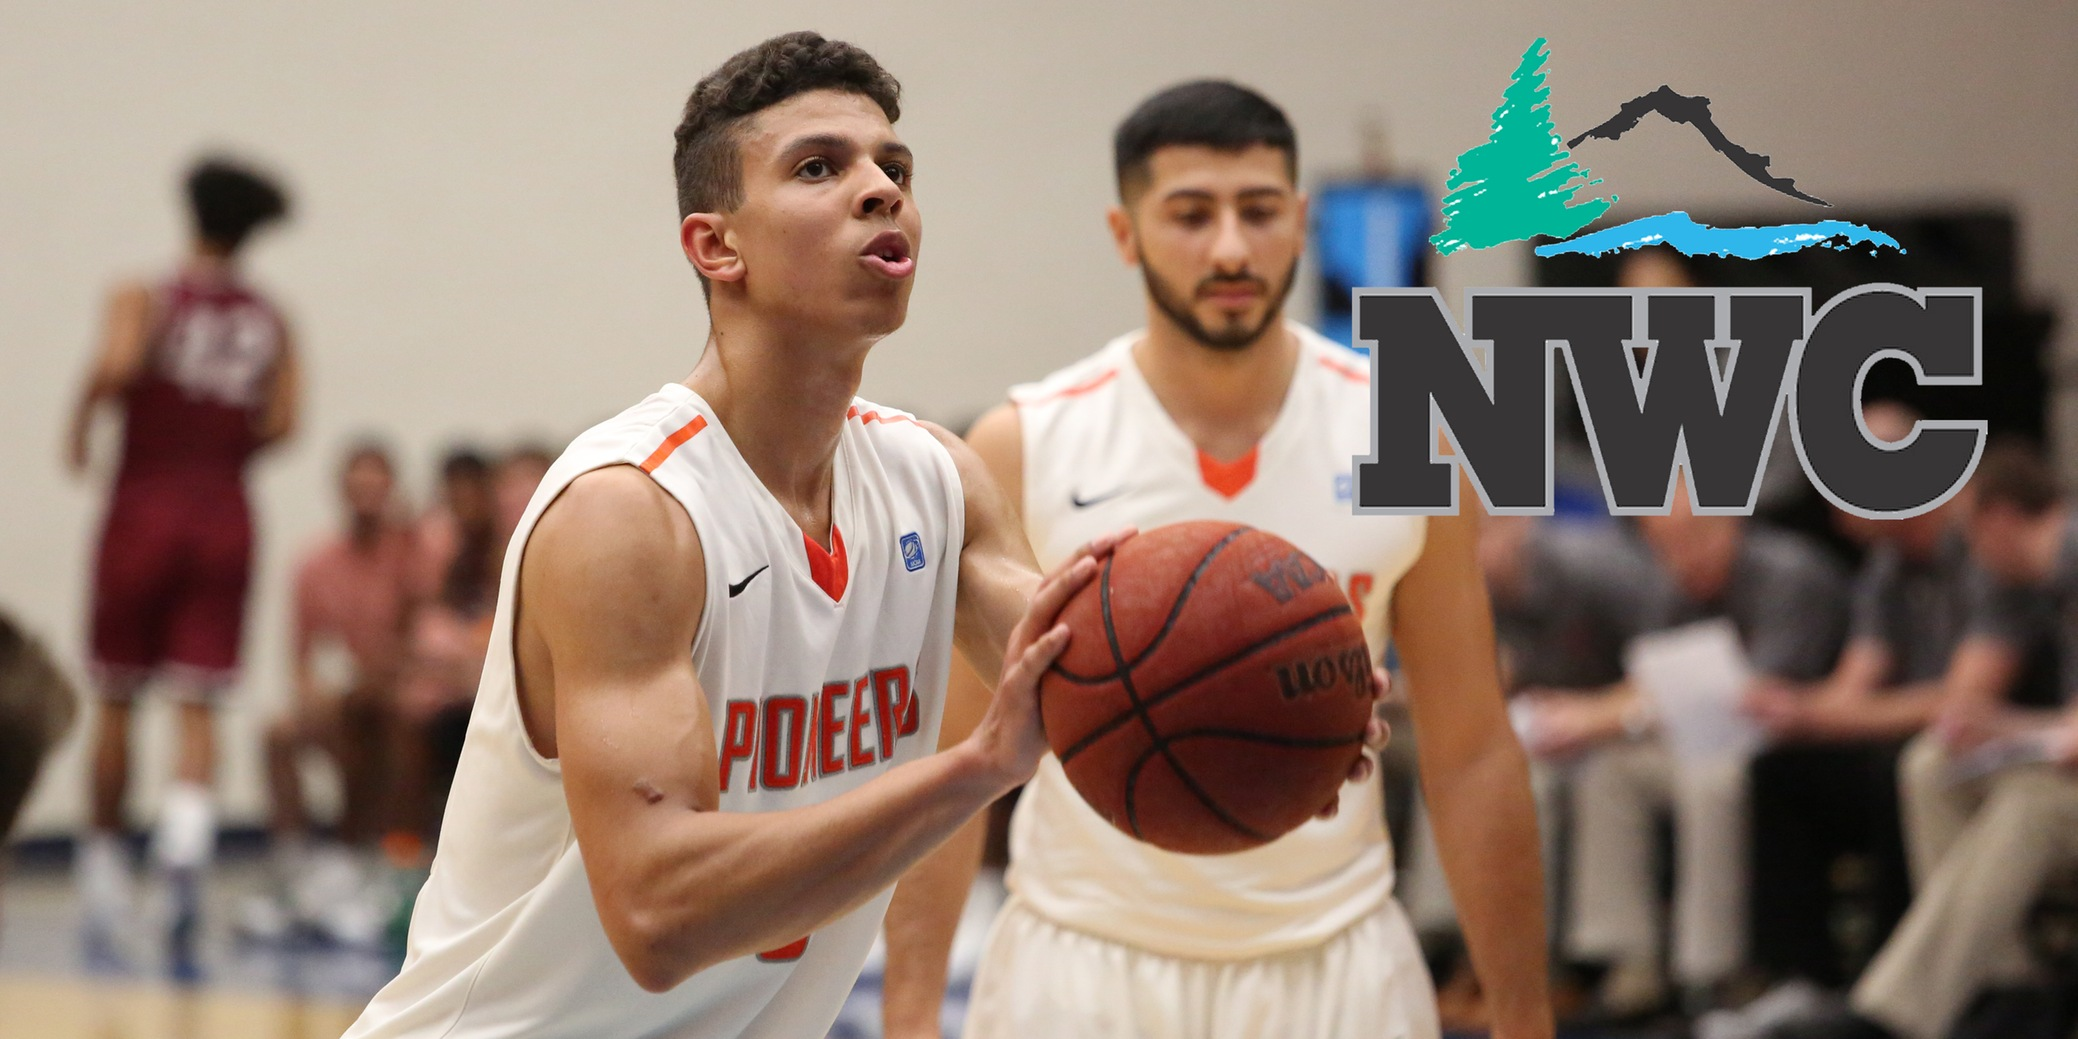 Vickers nets second All-NWC pick in as many seasons